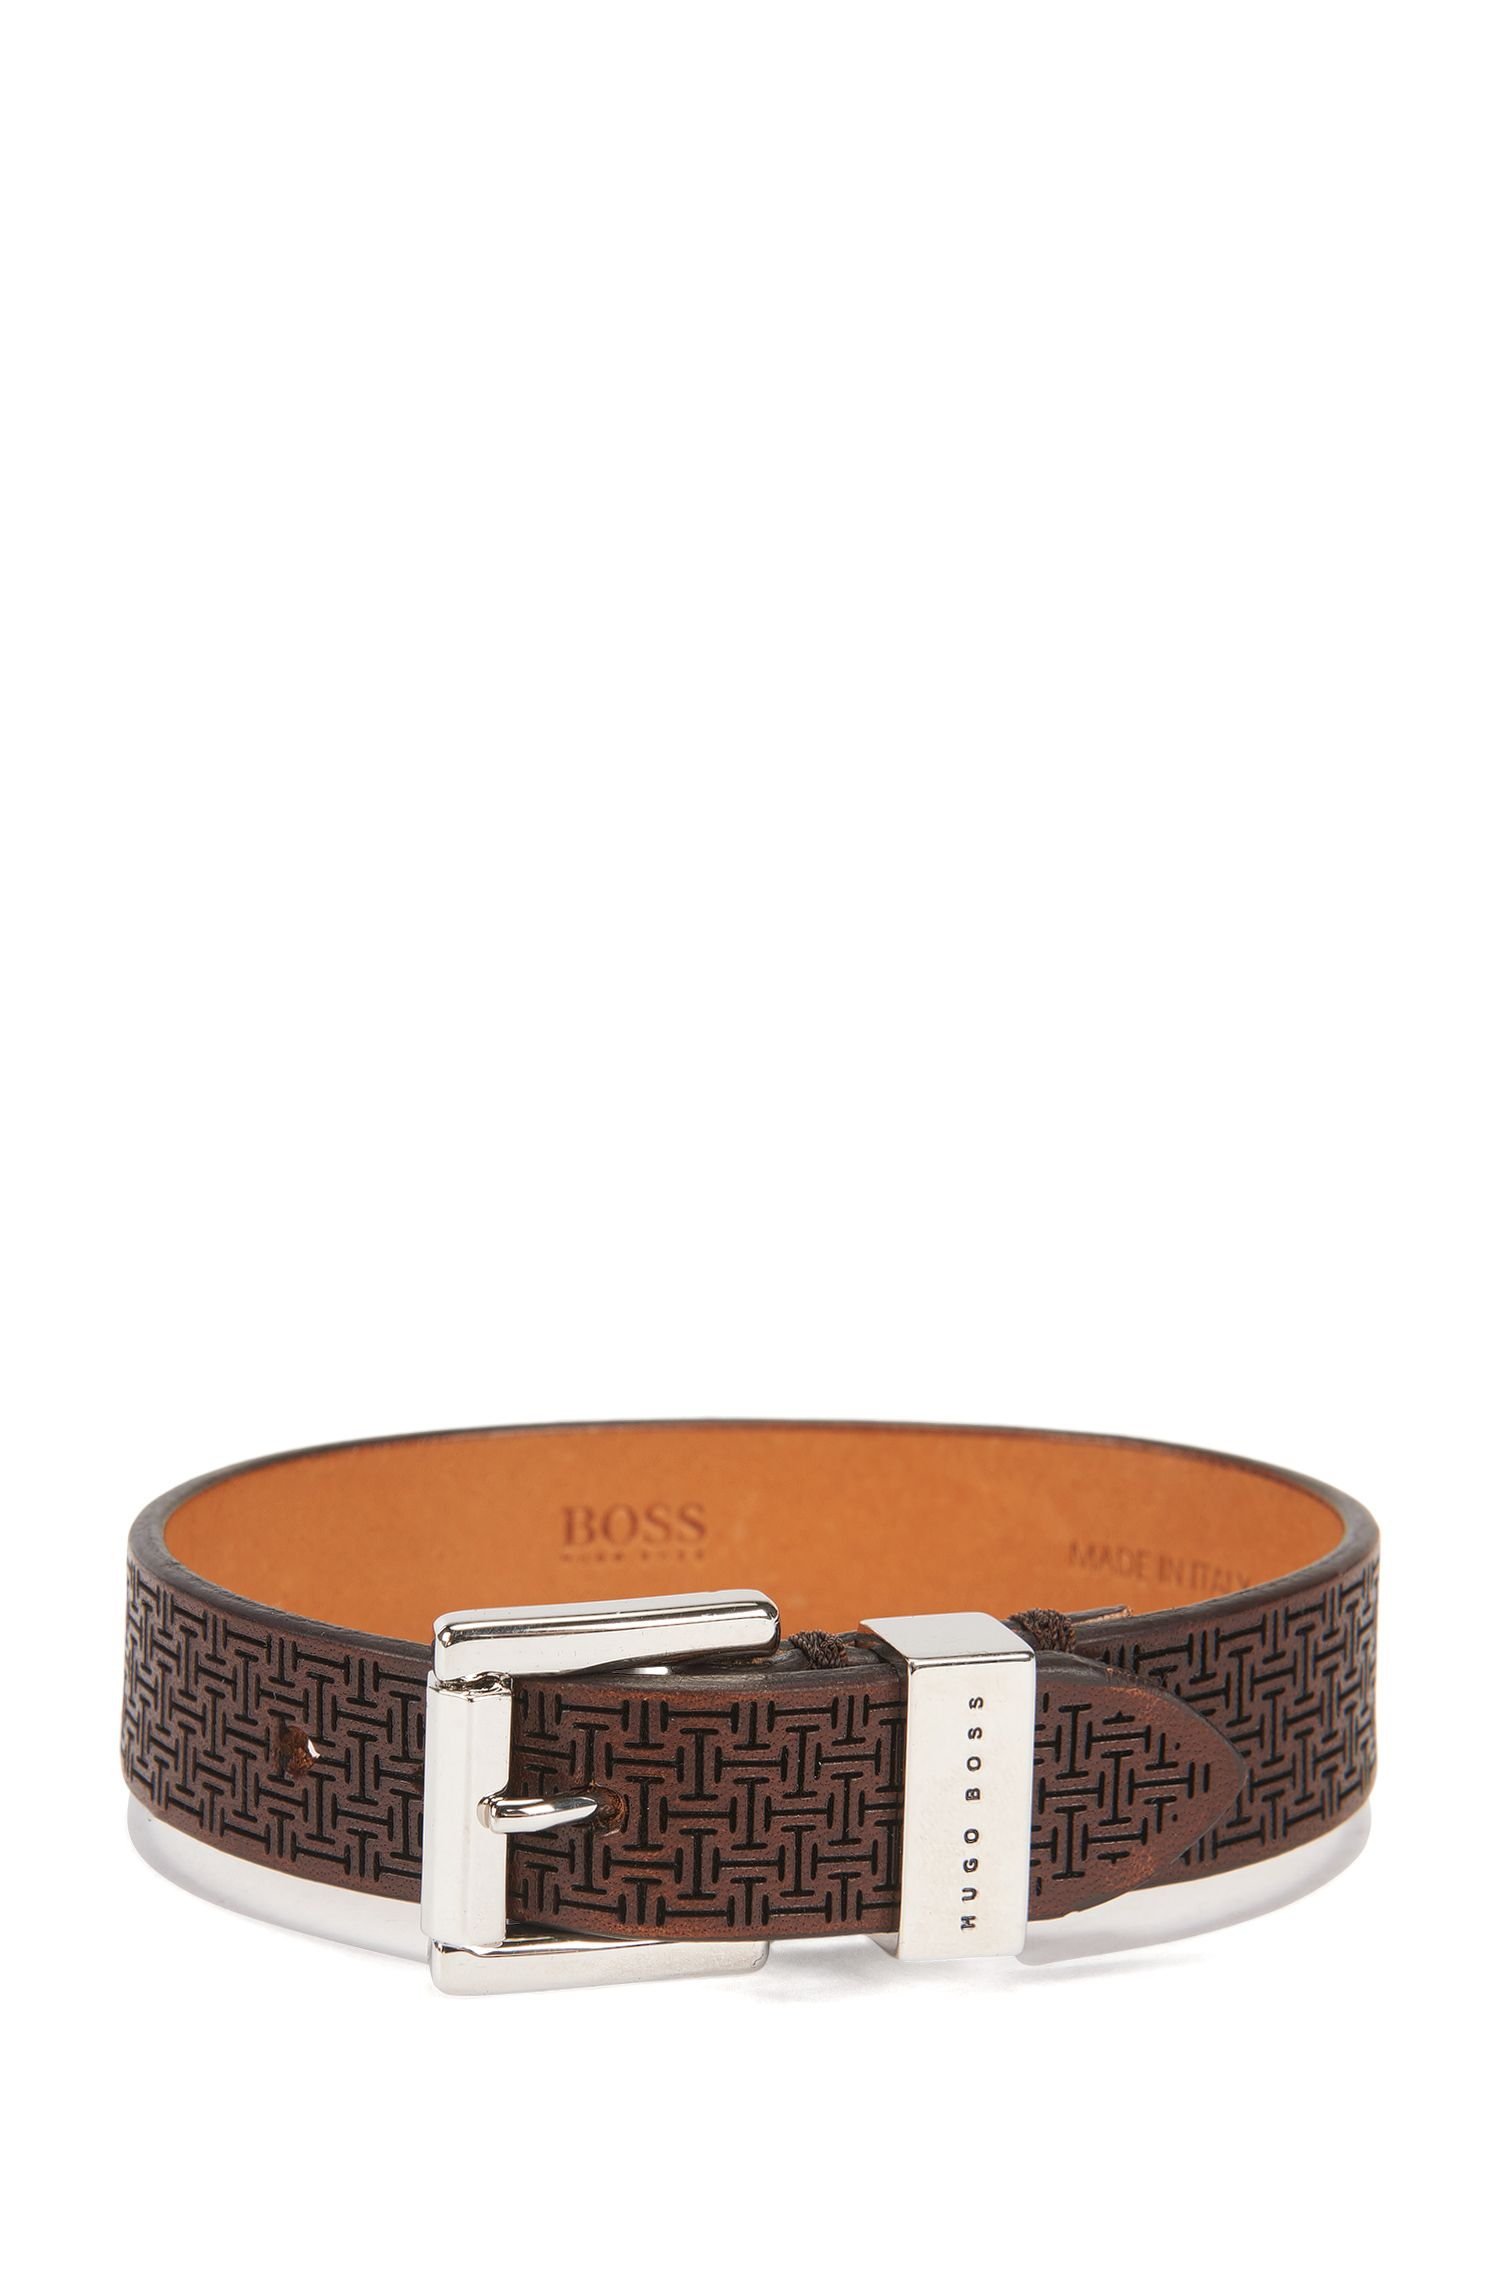 Micro-lasered bracelet in rich leather